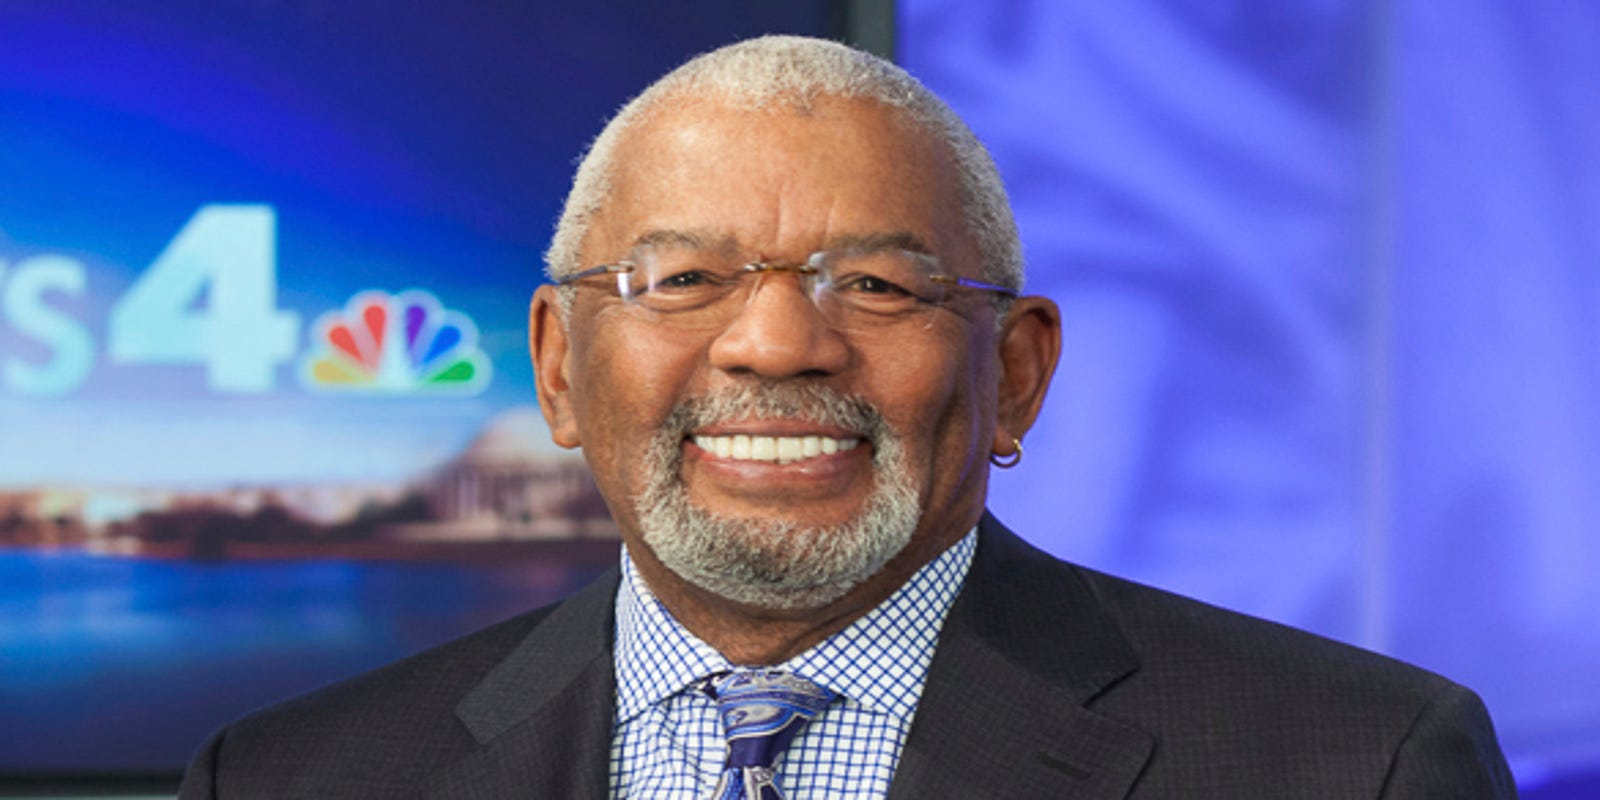 Longtime Tv News Anchor Jim Vance Dies